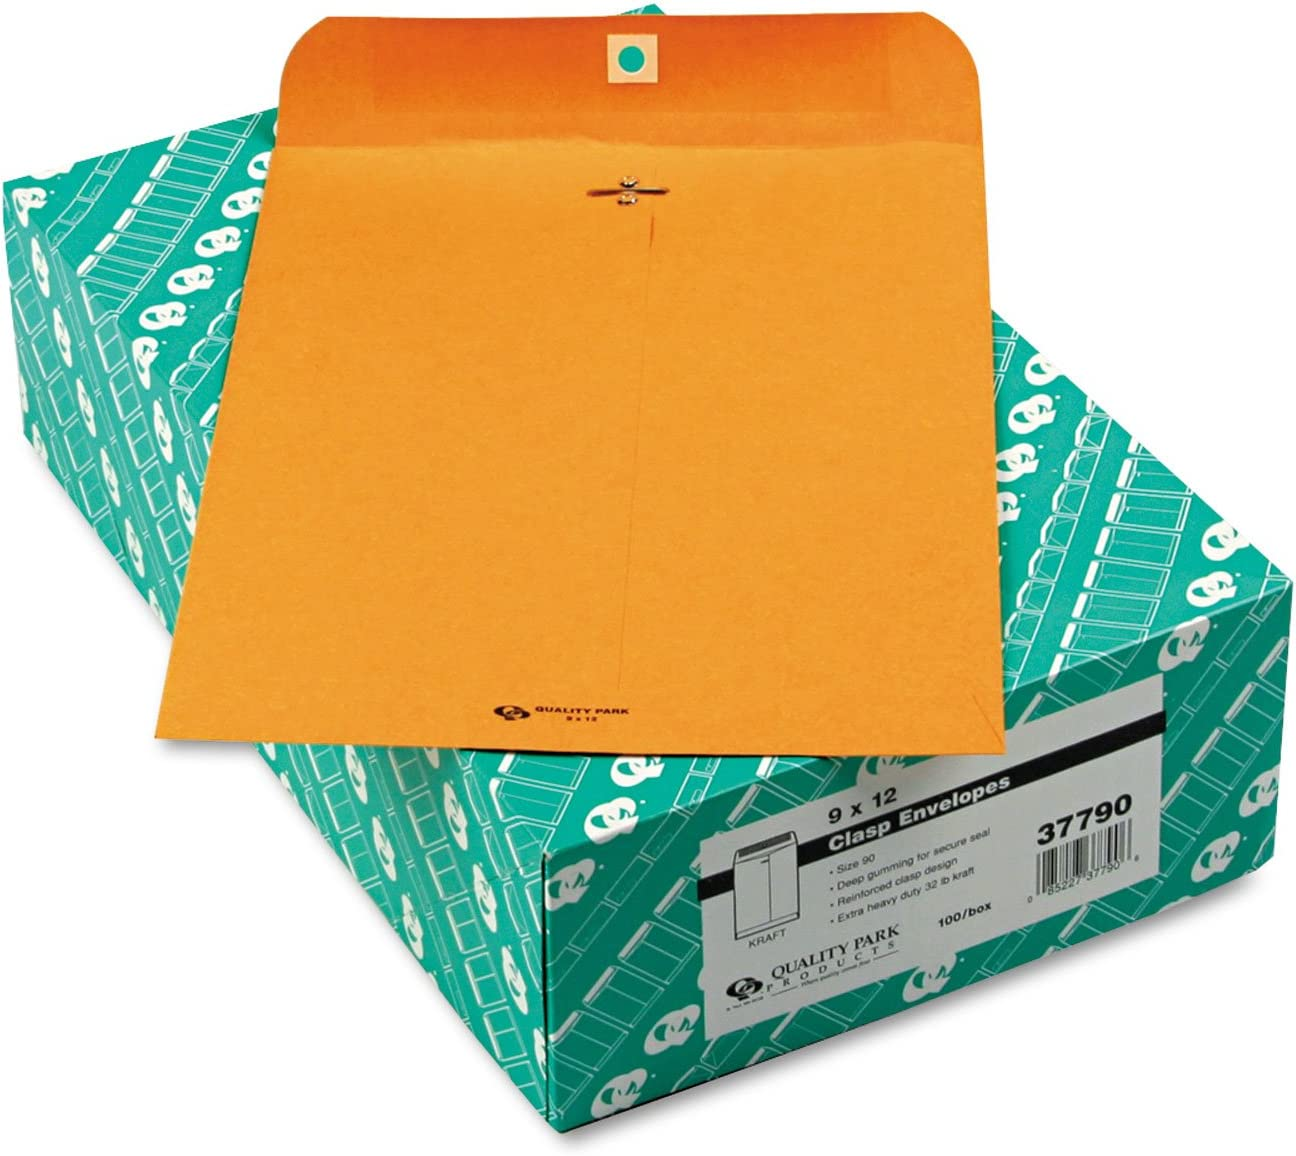 Quality Park 37790 Heavy-Duty Clasp x12-Inc New Free Shipping 9-Inch New product!! Envelope 32Lb